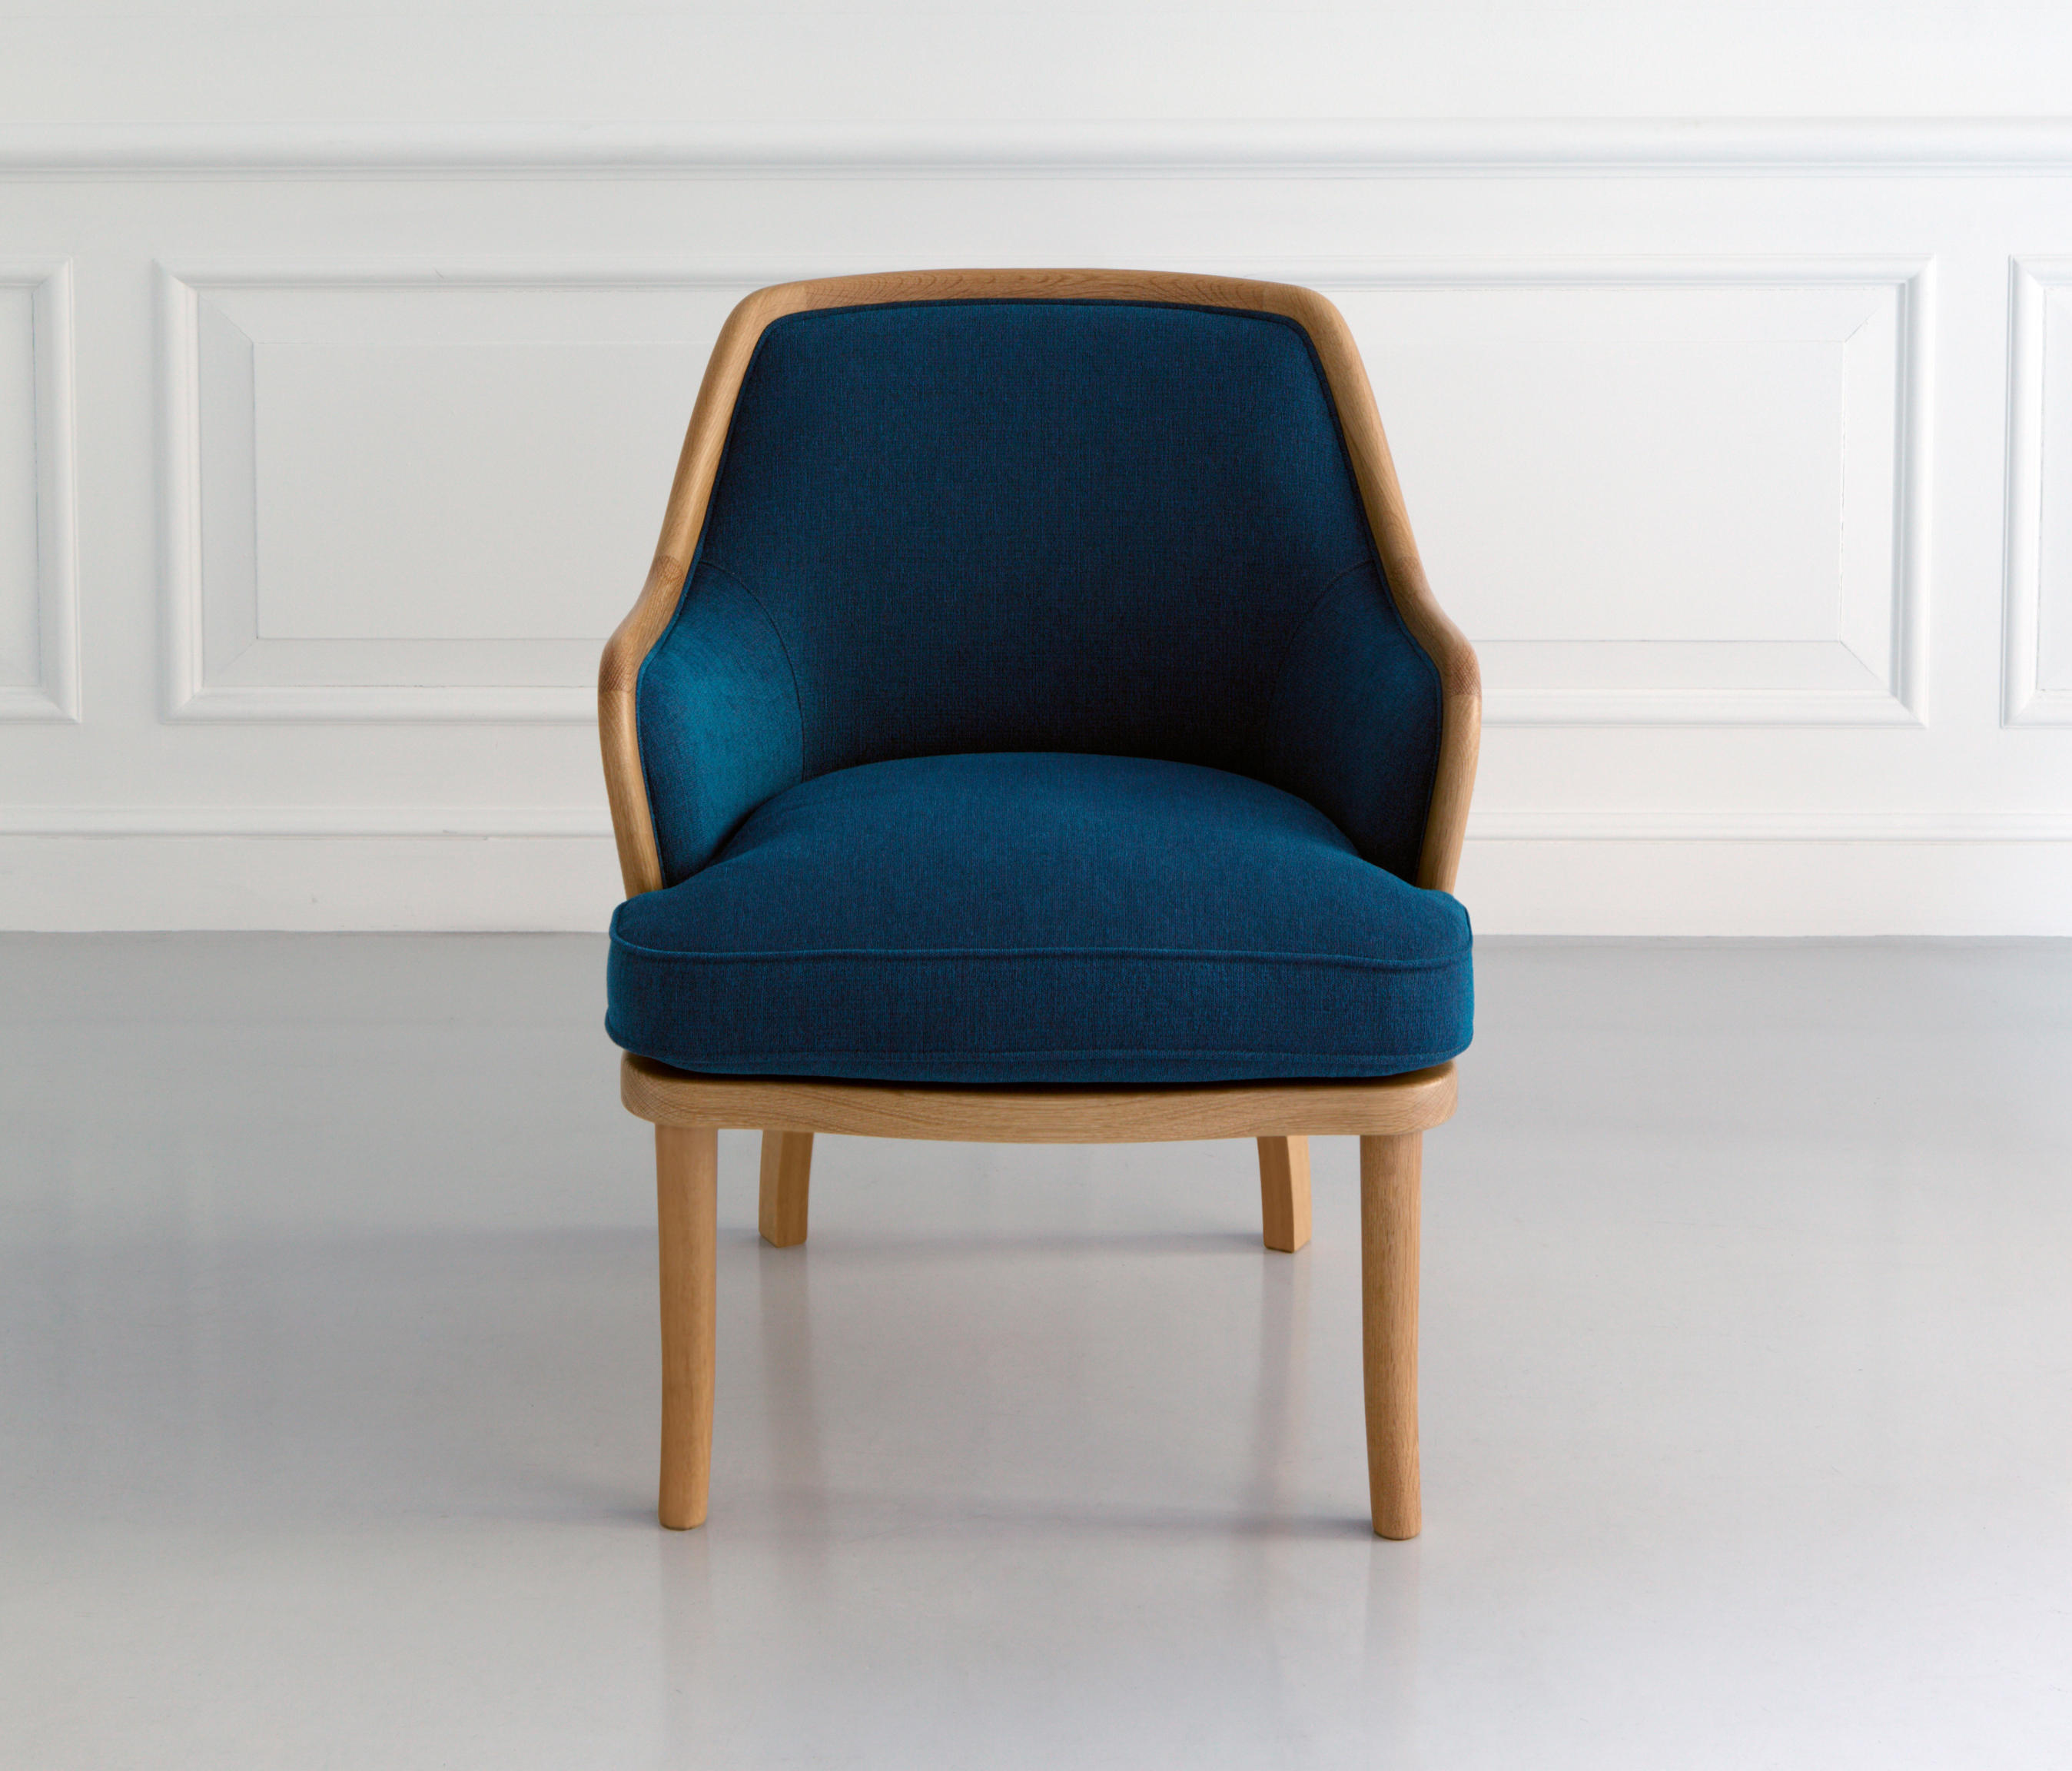 CLUB ARM CHAIR Lounge chairs from MARUNI